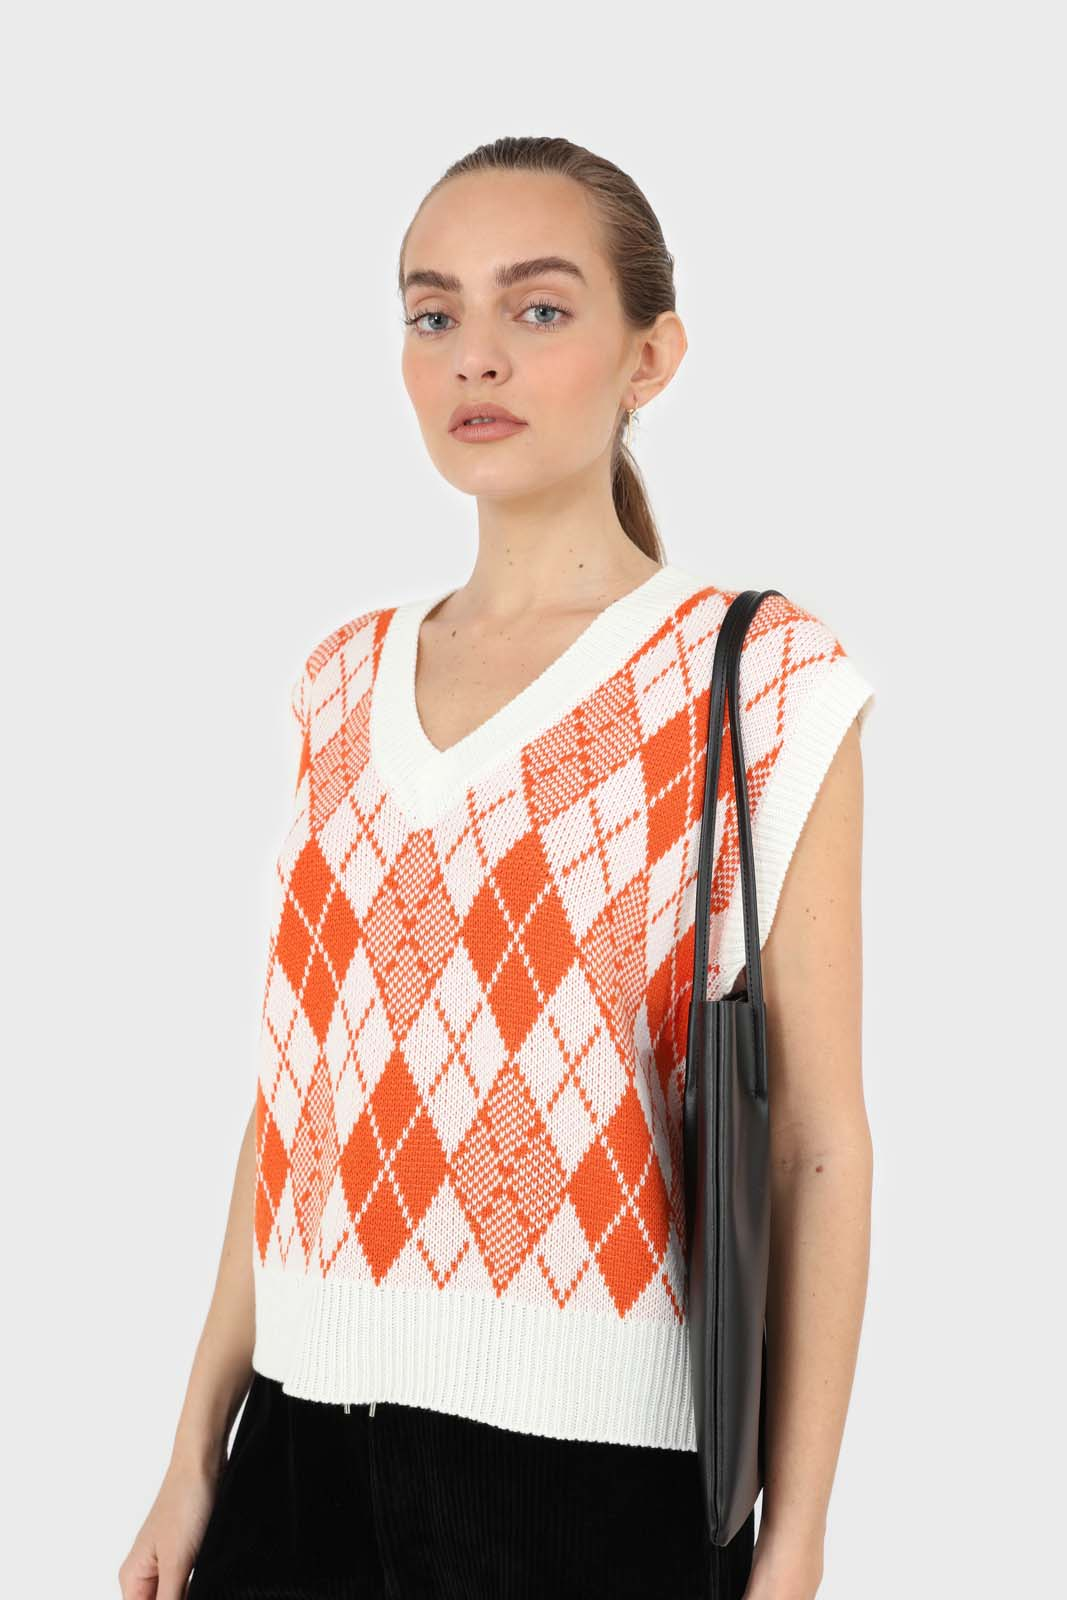 Ivory and orange bright argyle knit vest1sx